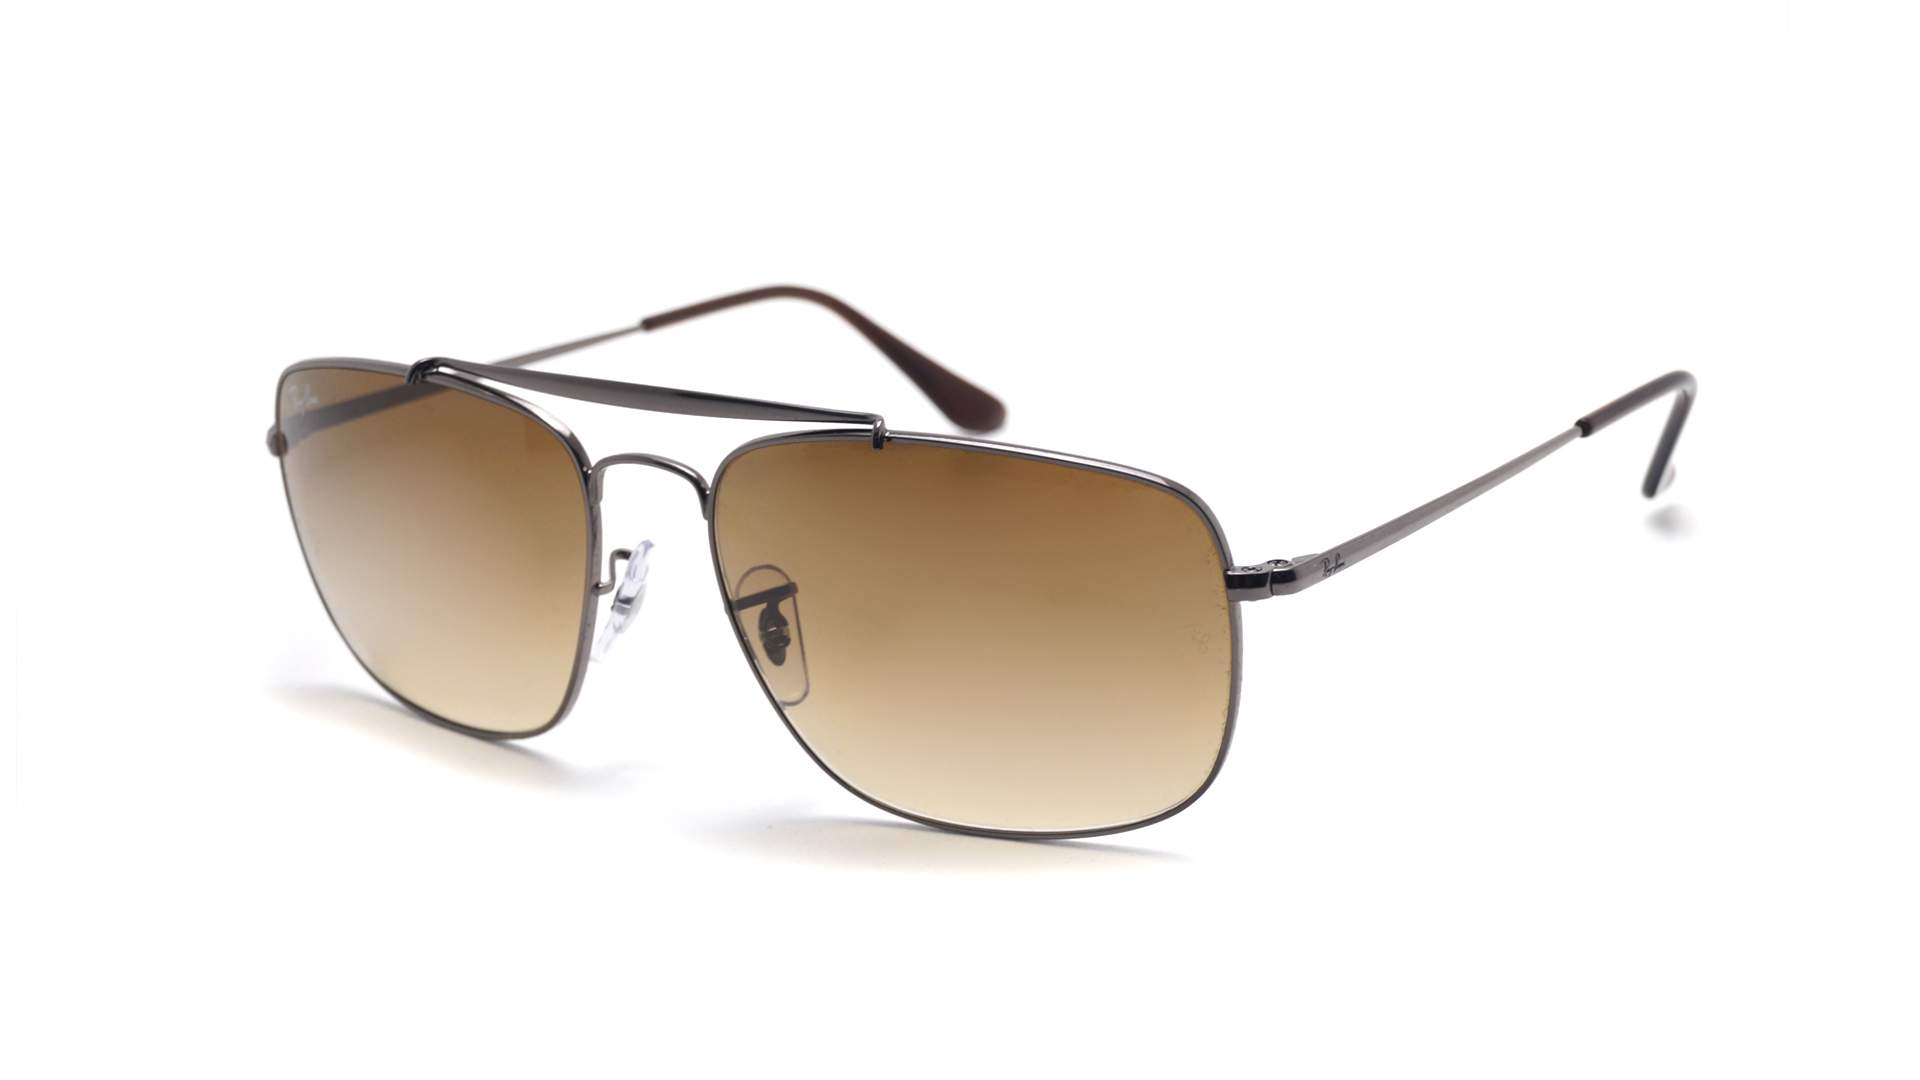 1b2fd427c6 Sunglasses Ray-Ban The colonel Grey RB3560 004 51 61-17 Large Gradient